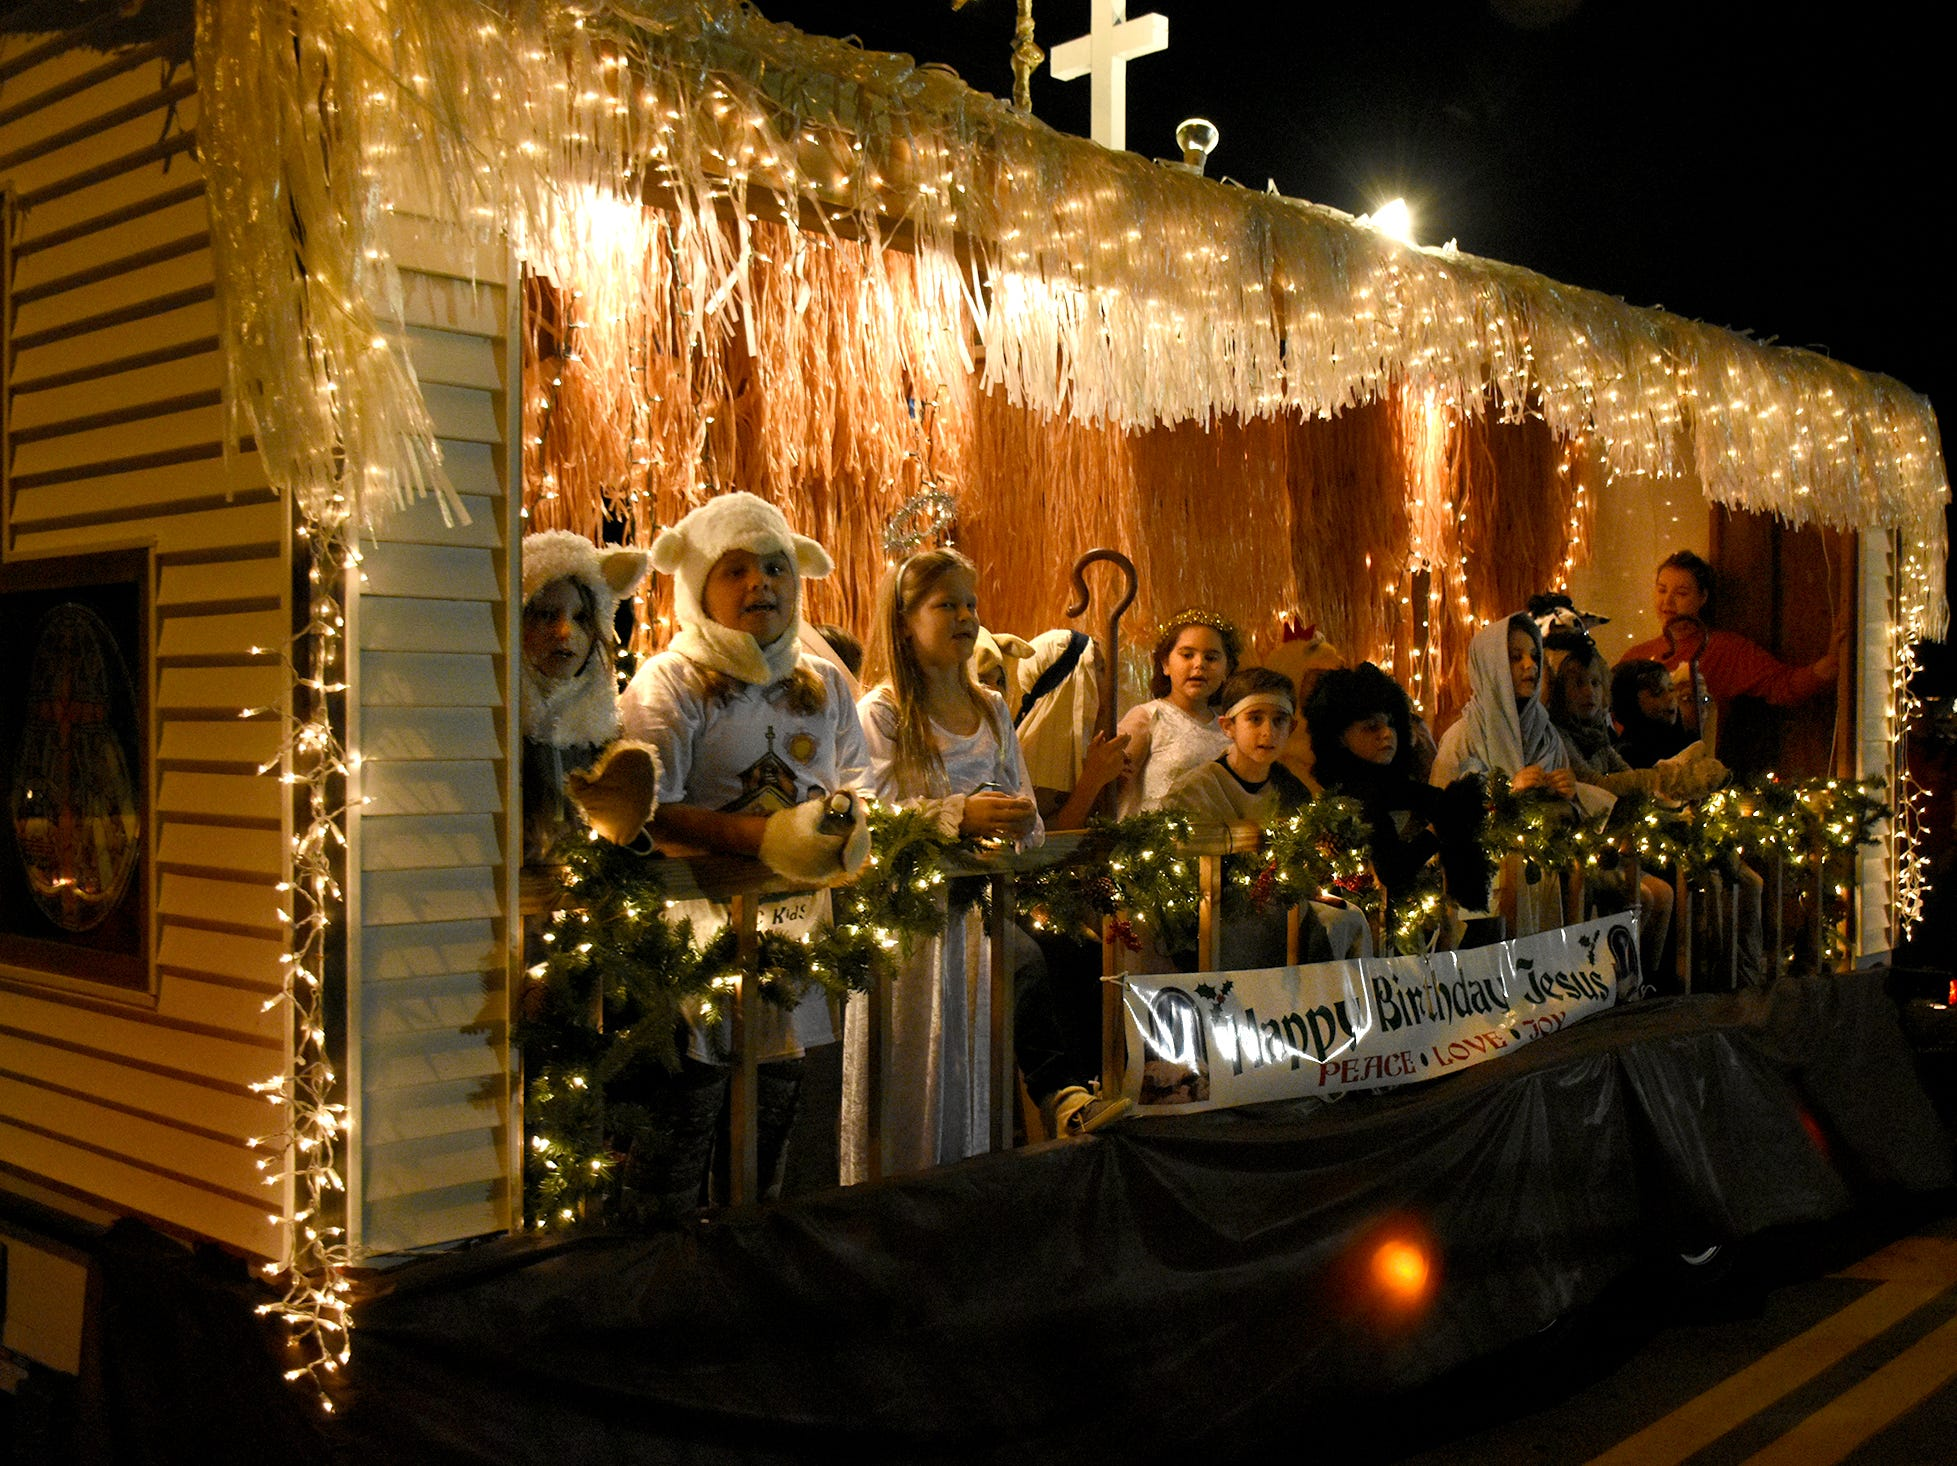 Marco Presbyterian Church shows a manger scene Saturday night during Marco's Christmas Island Style street parade.